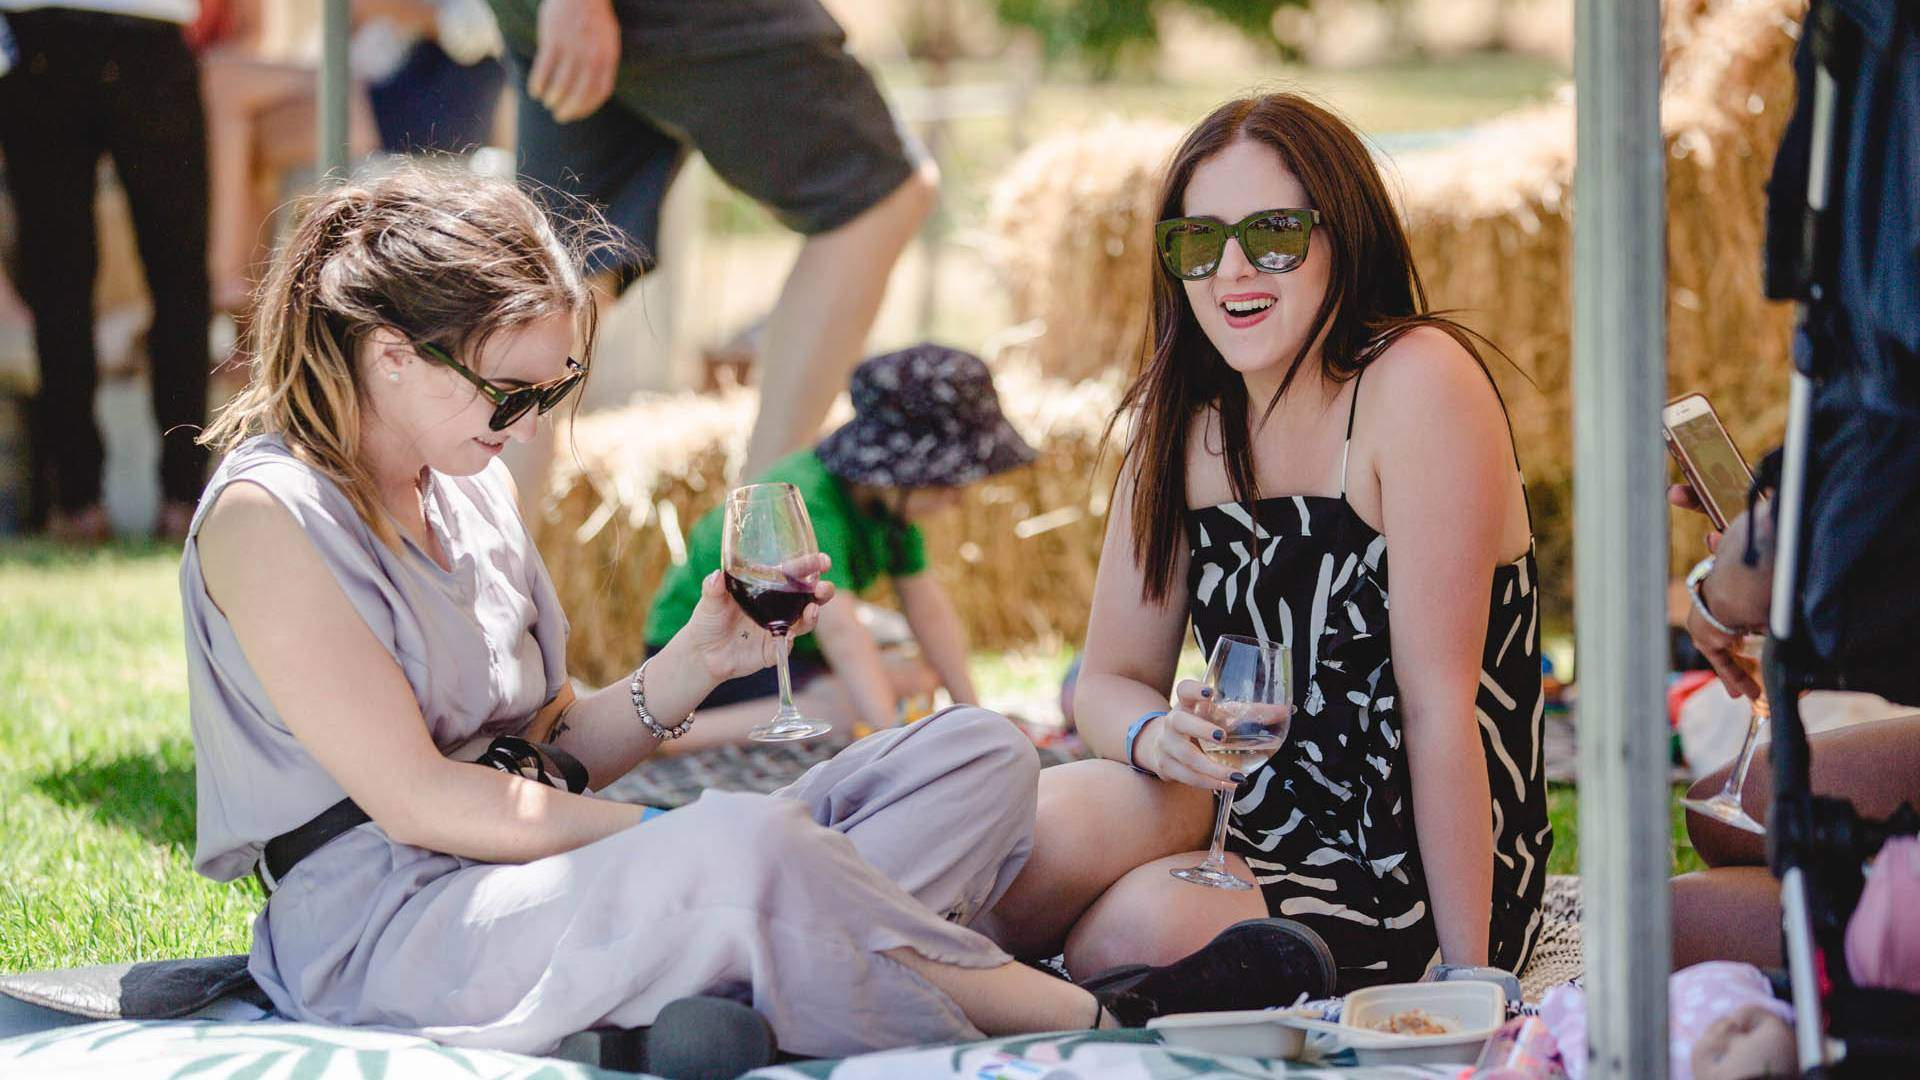 Two women drinking red wine on a picnic blanket